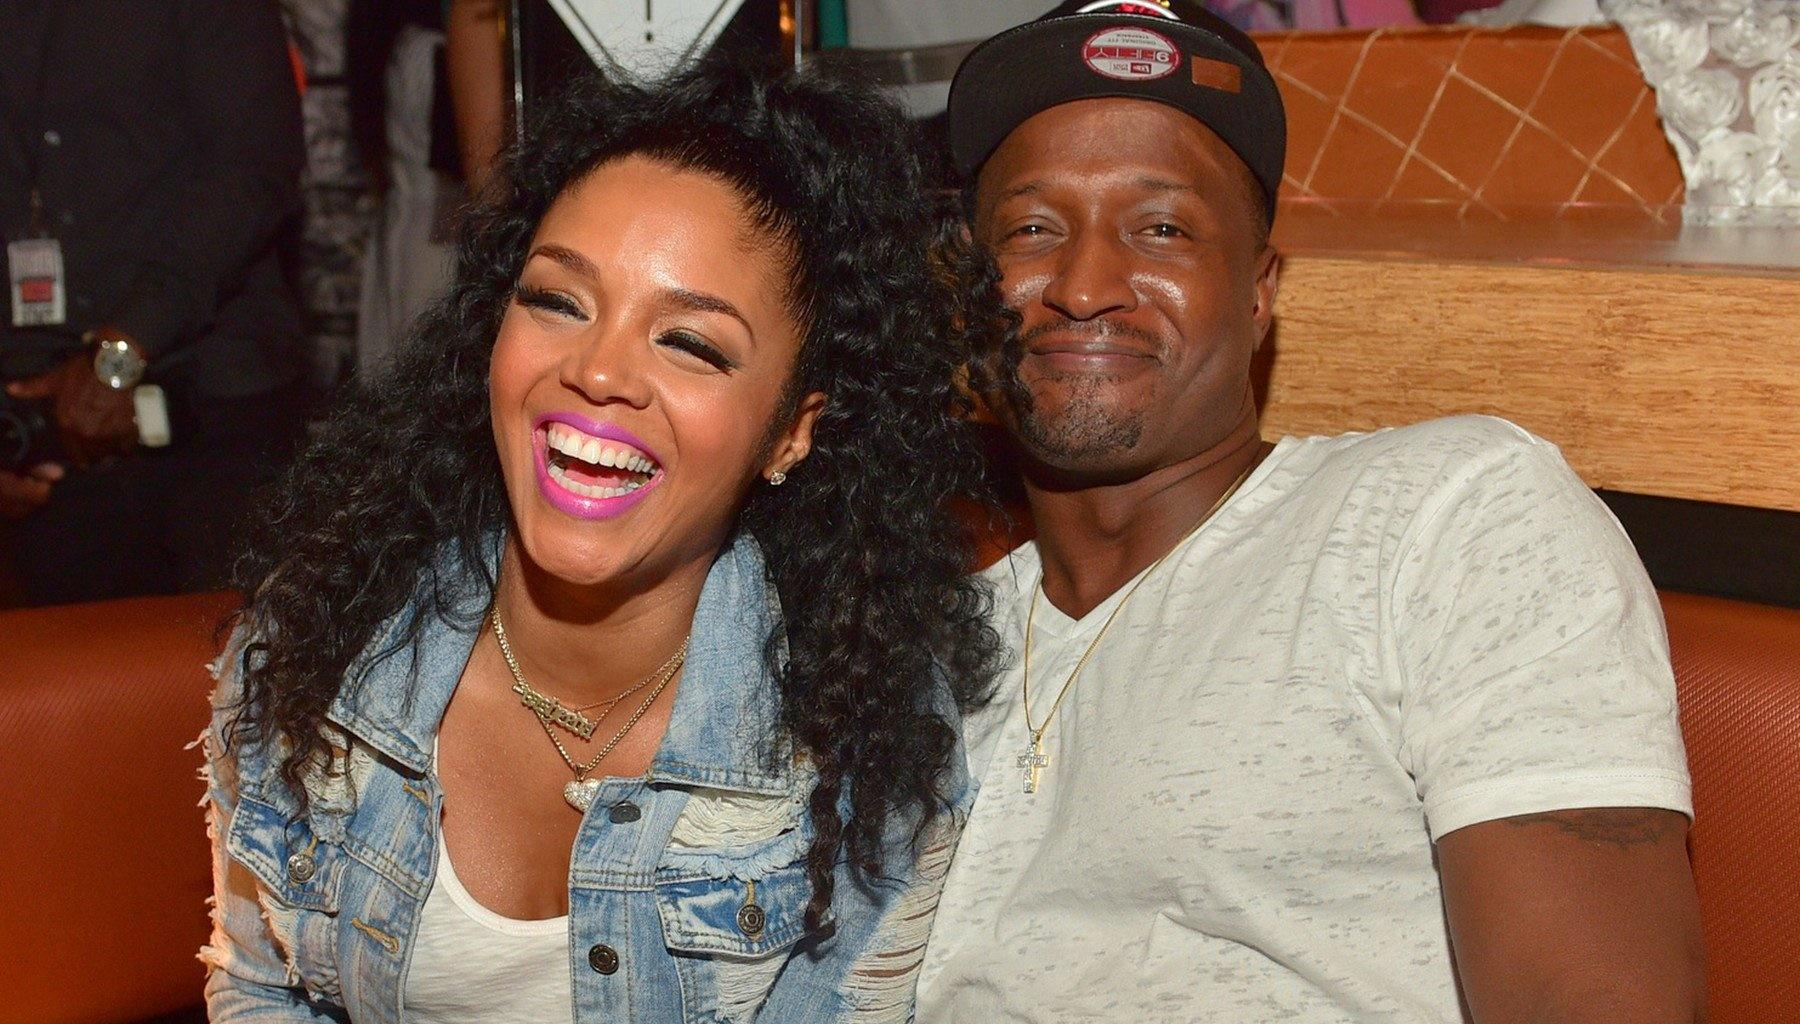 Rasheeda Frost Celebrates Her Sister's Birthday At Pressed Boutique - Here's The Video